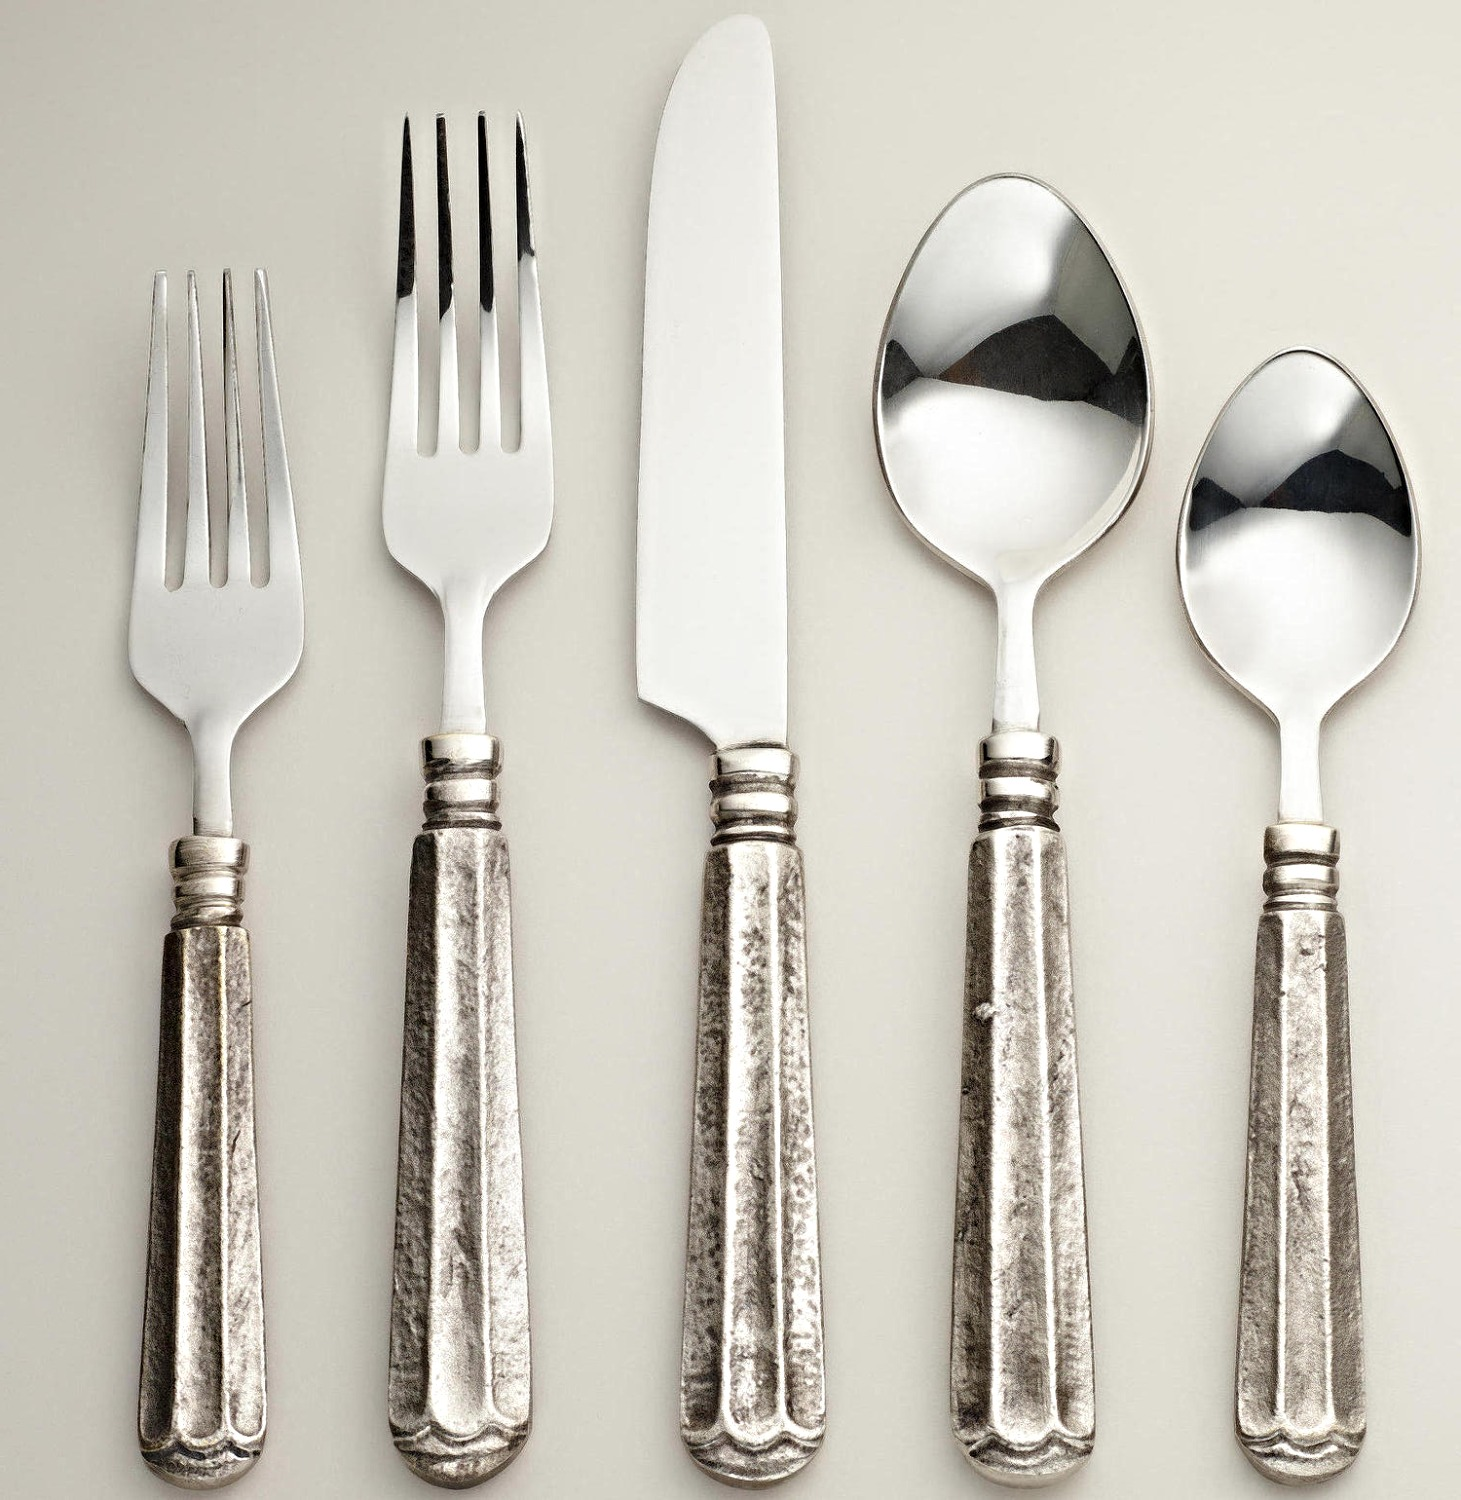 BRUISED FLATWARE